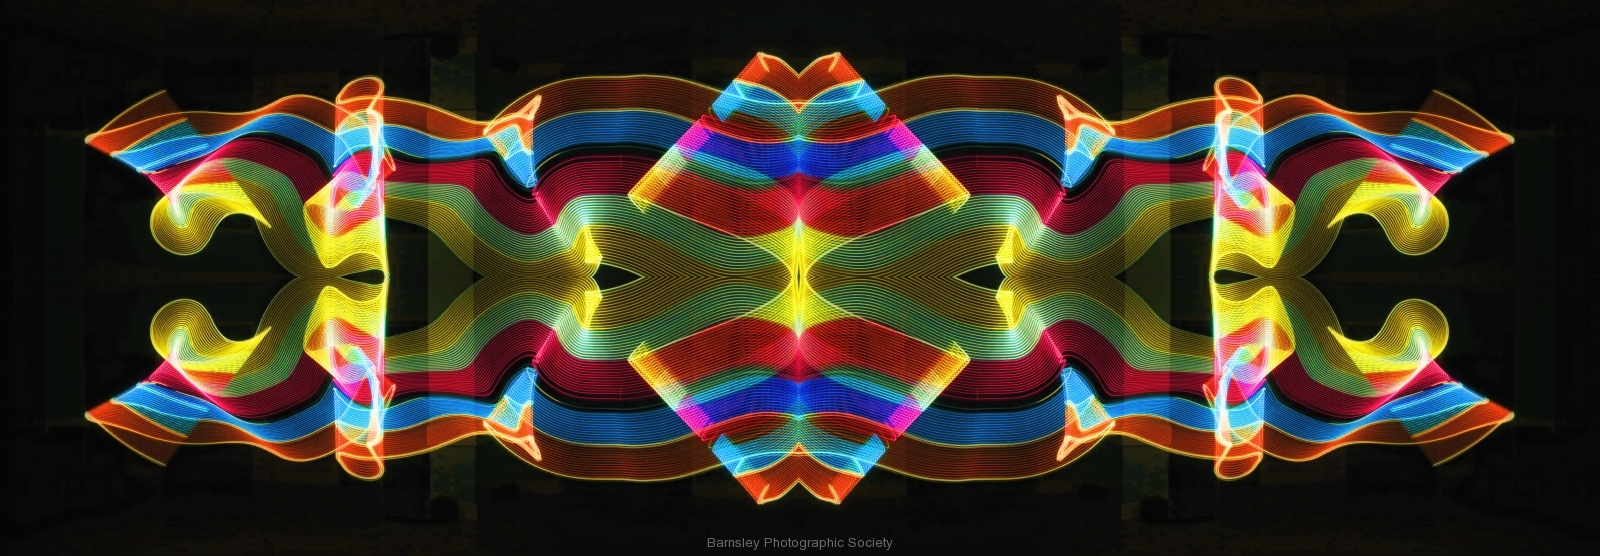 Painting in Light II  by  Dave Rippon  3